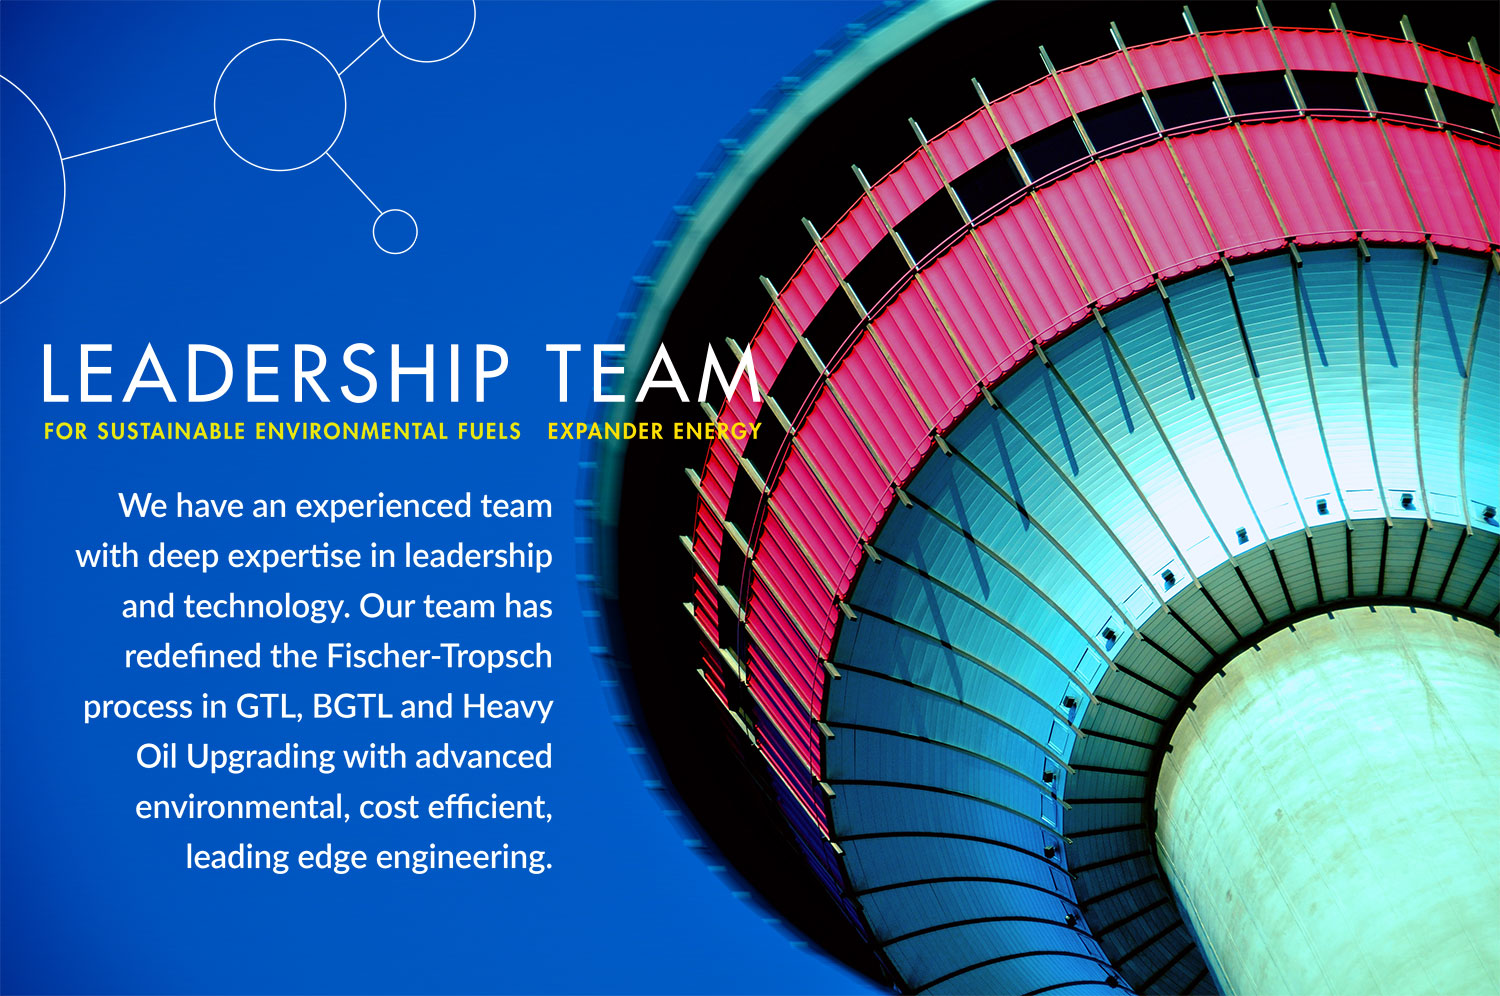 About Expander Energy Leadership